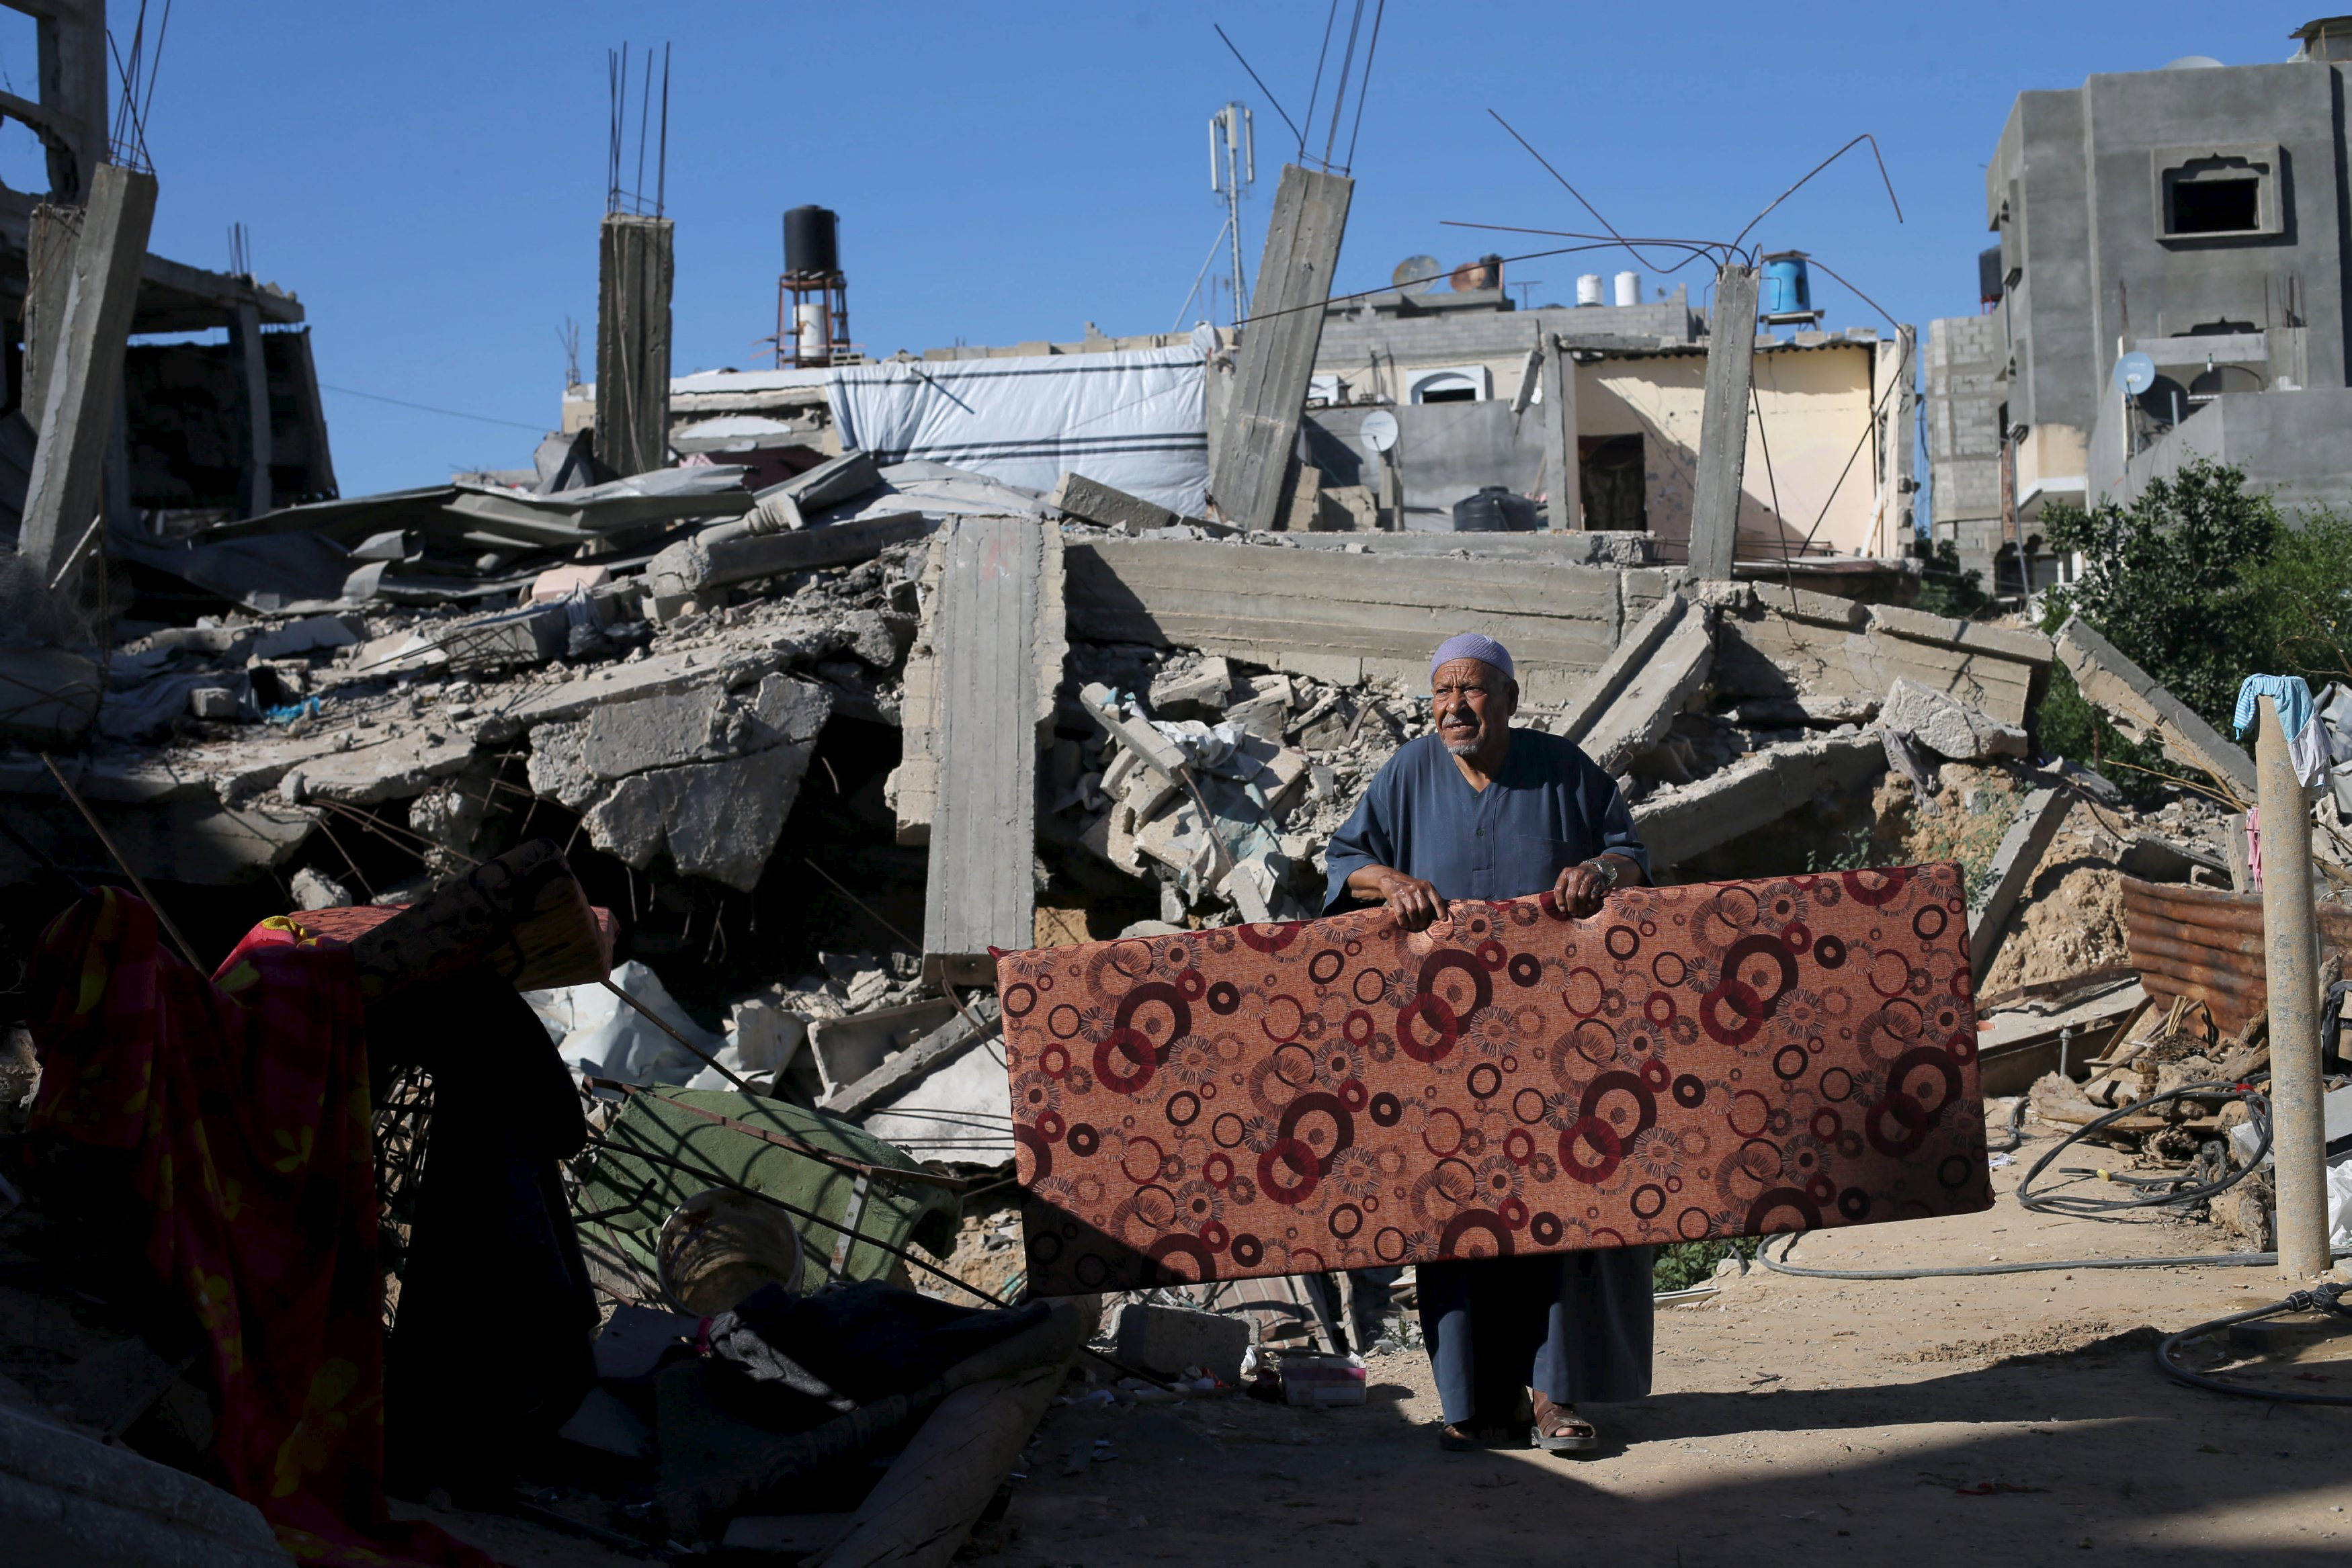 A Palestinian man carries a mattress outside his house that witnesses said was destroyed by Israeli shelling during a 50-day war last summer, in Khan Younis in the southern Gaza Strip June 22, 2015. Israel disputed on Monday the findings of a U.N. report that it may have committed war crimes in the 2014 Gaza conflict, saying its forces acted